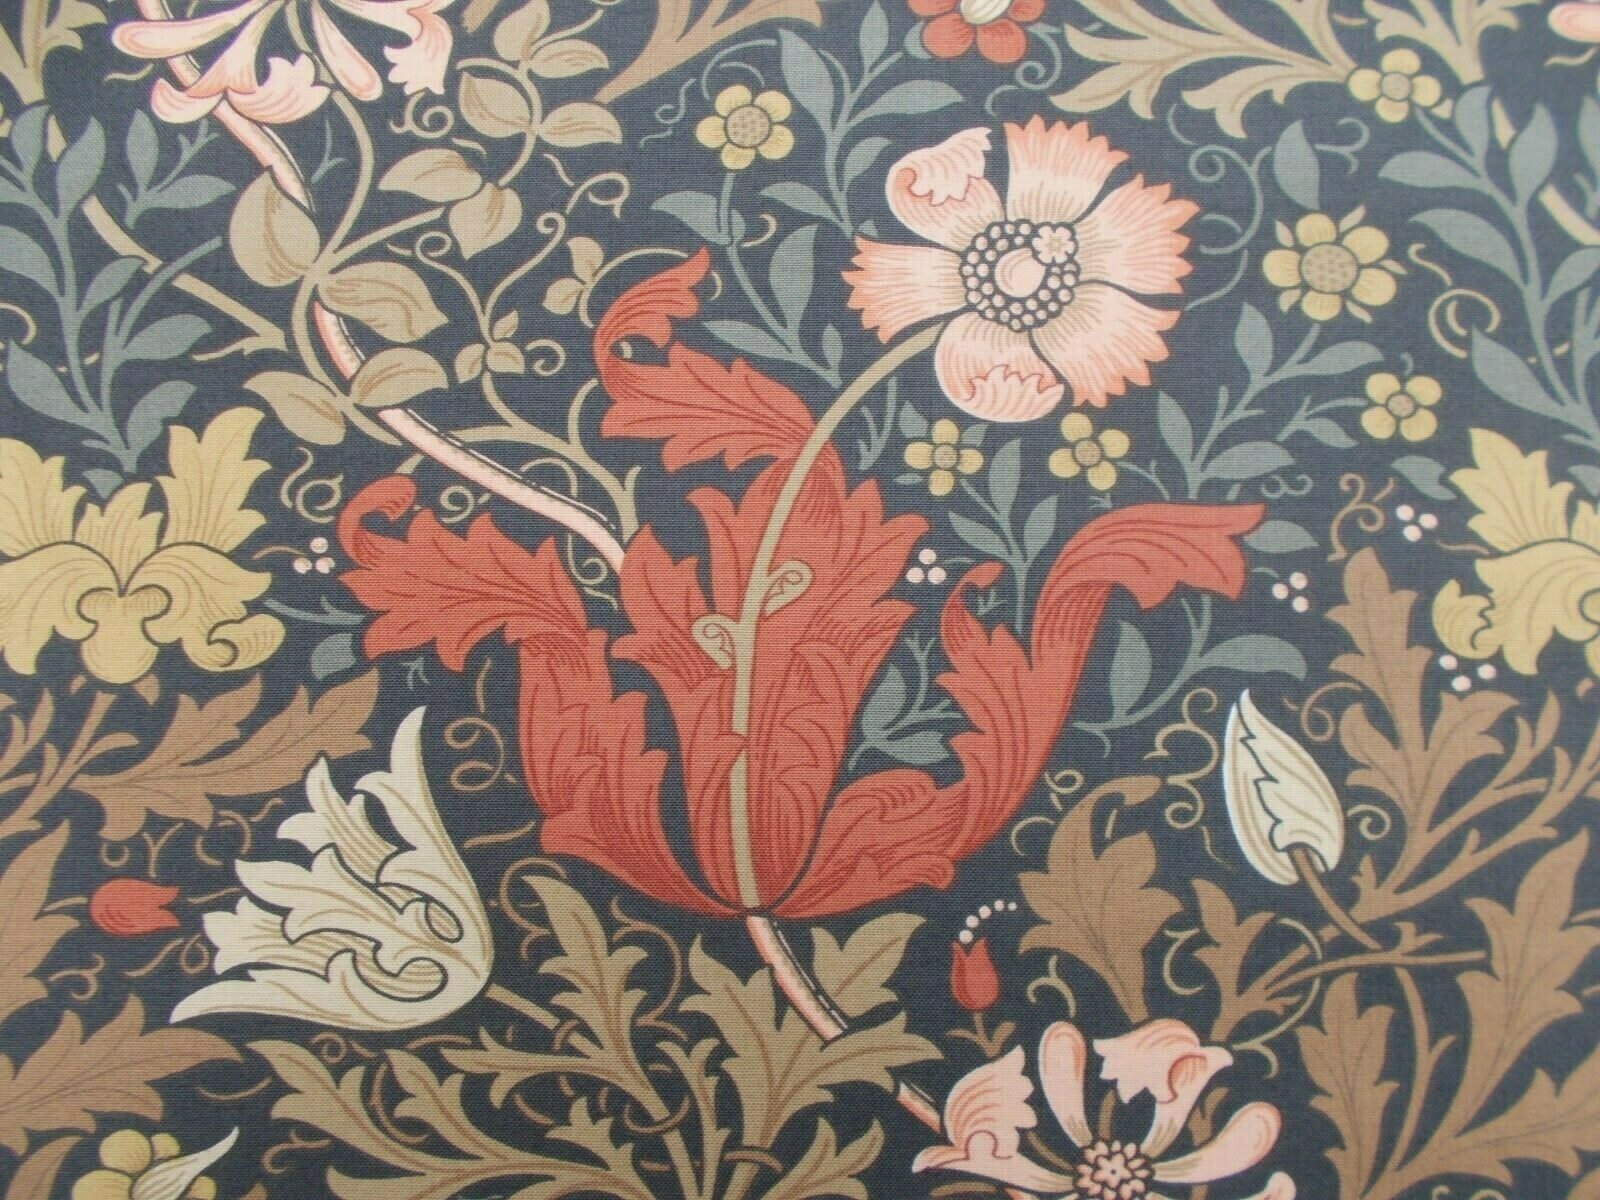 William Morris Curtain Fabric COMPTON 2.7 2.7 2.7 METRES Terracotta Multi - 100% Cotton 29cd53